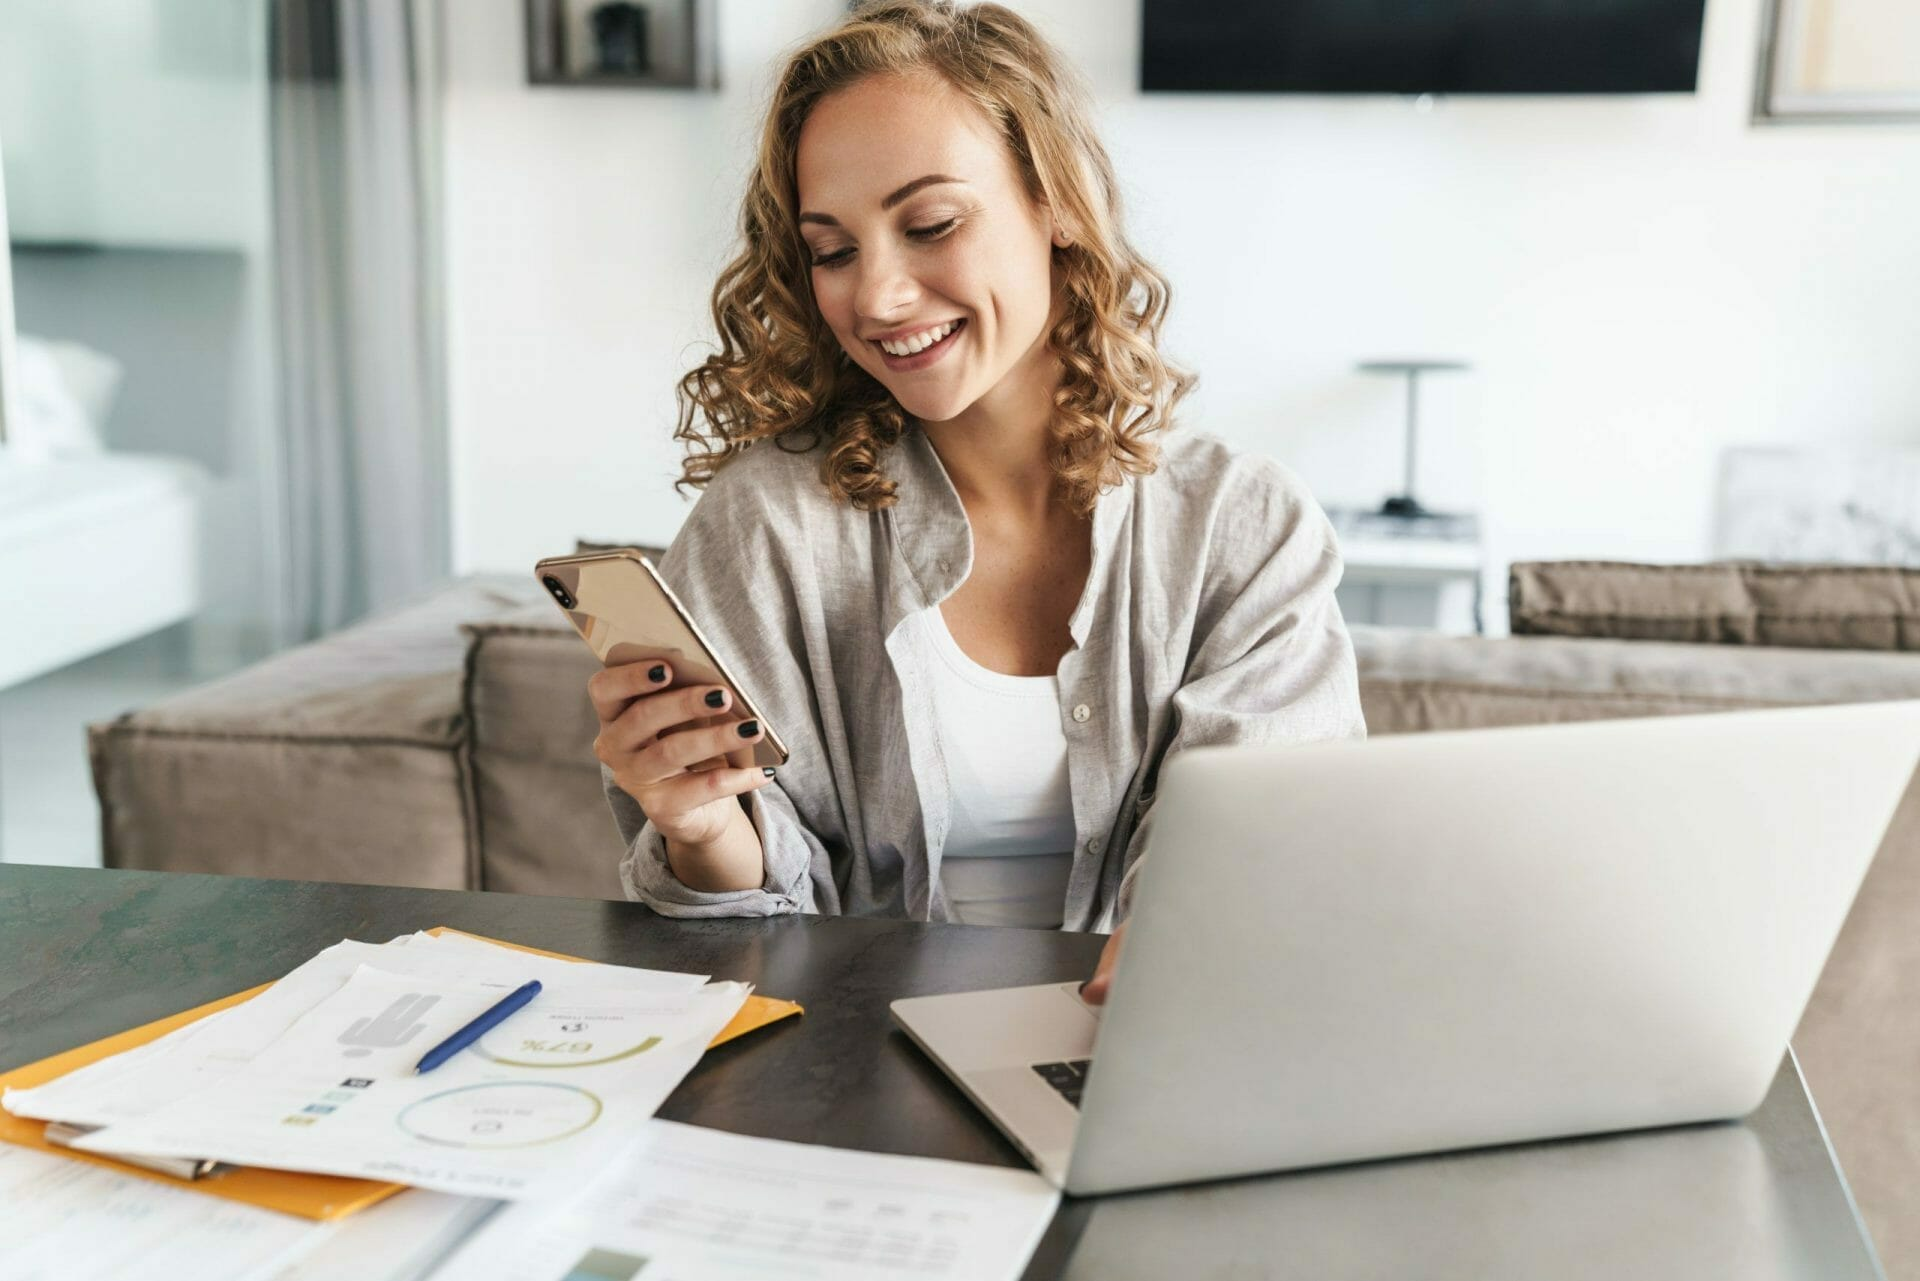 women working at home phone